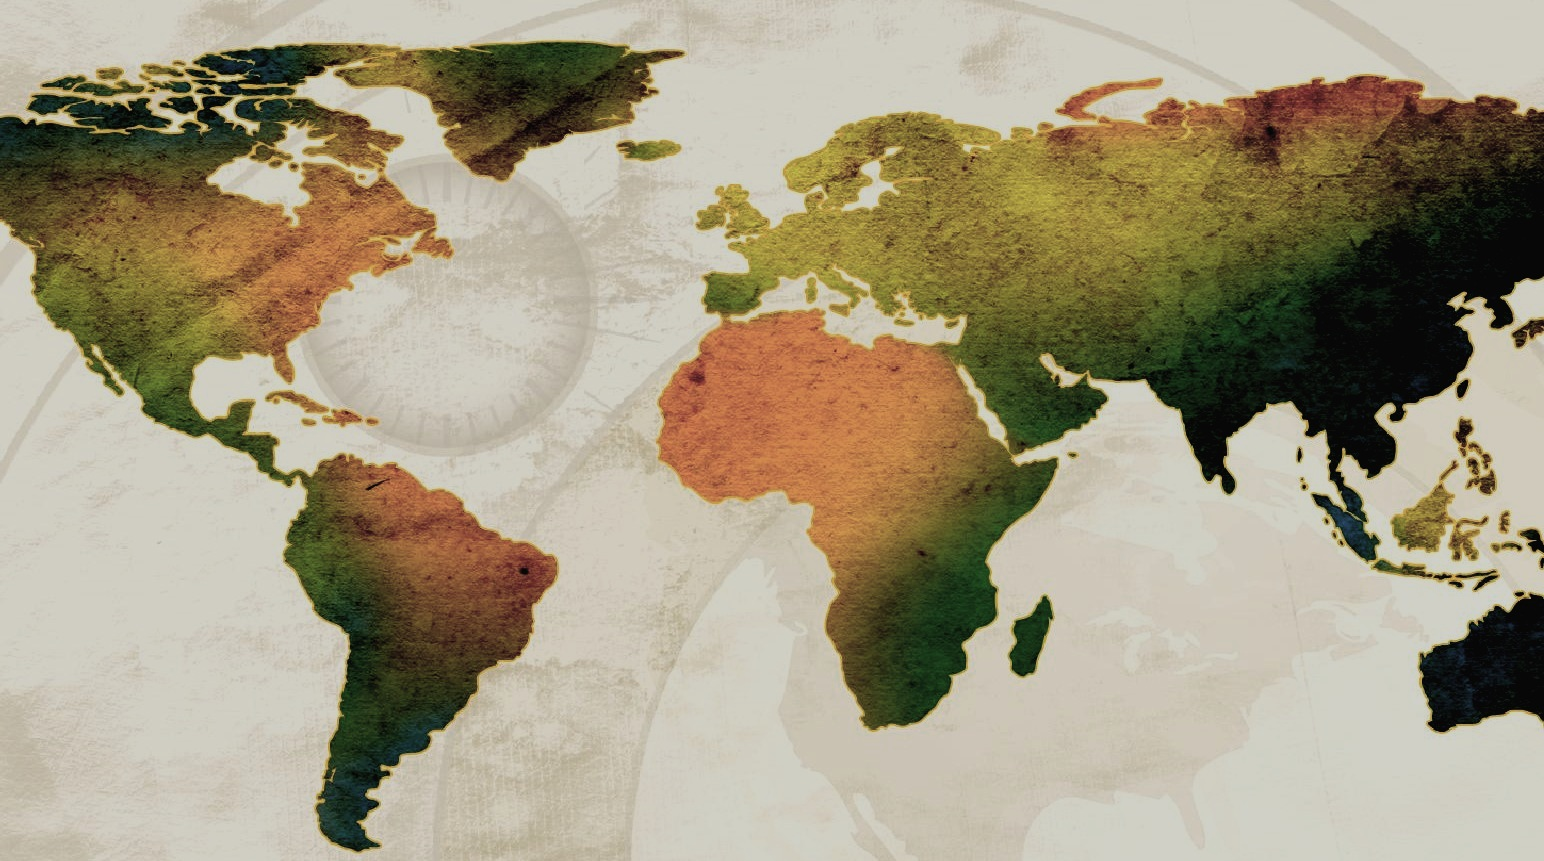 PASCOV // CROSS-CULTURAL - PARTNERING IN GOD'S CROSS-CULTURAL MISSION IN THE UNITED STATES AND ABROAD